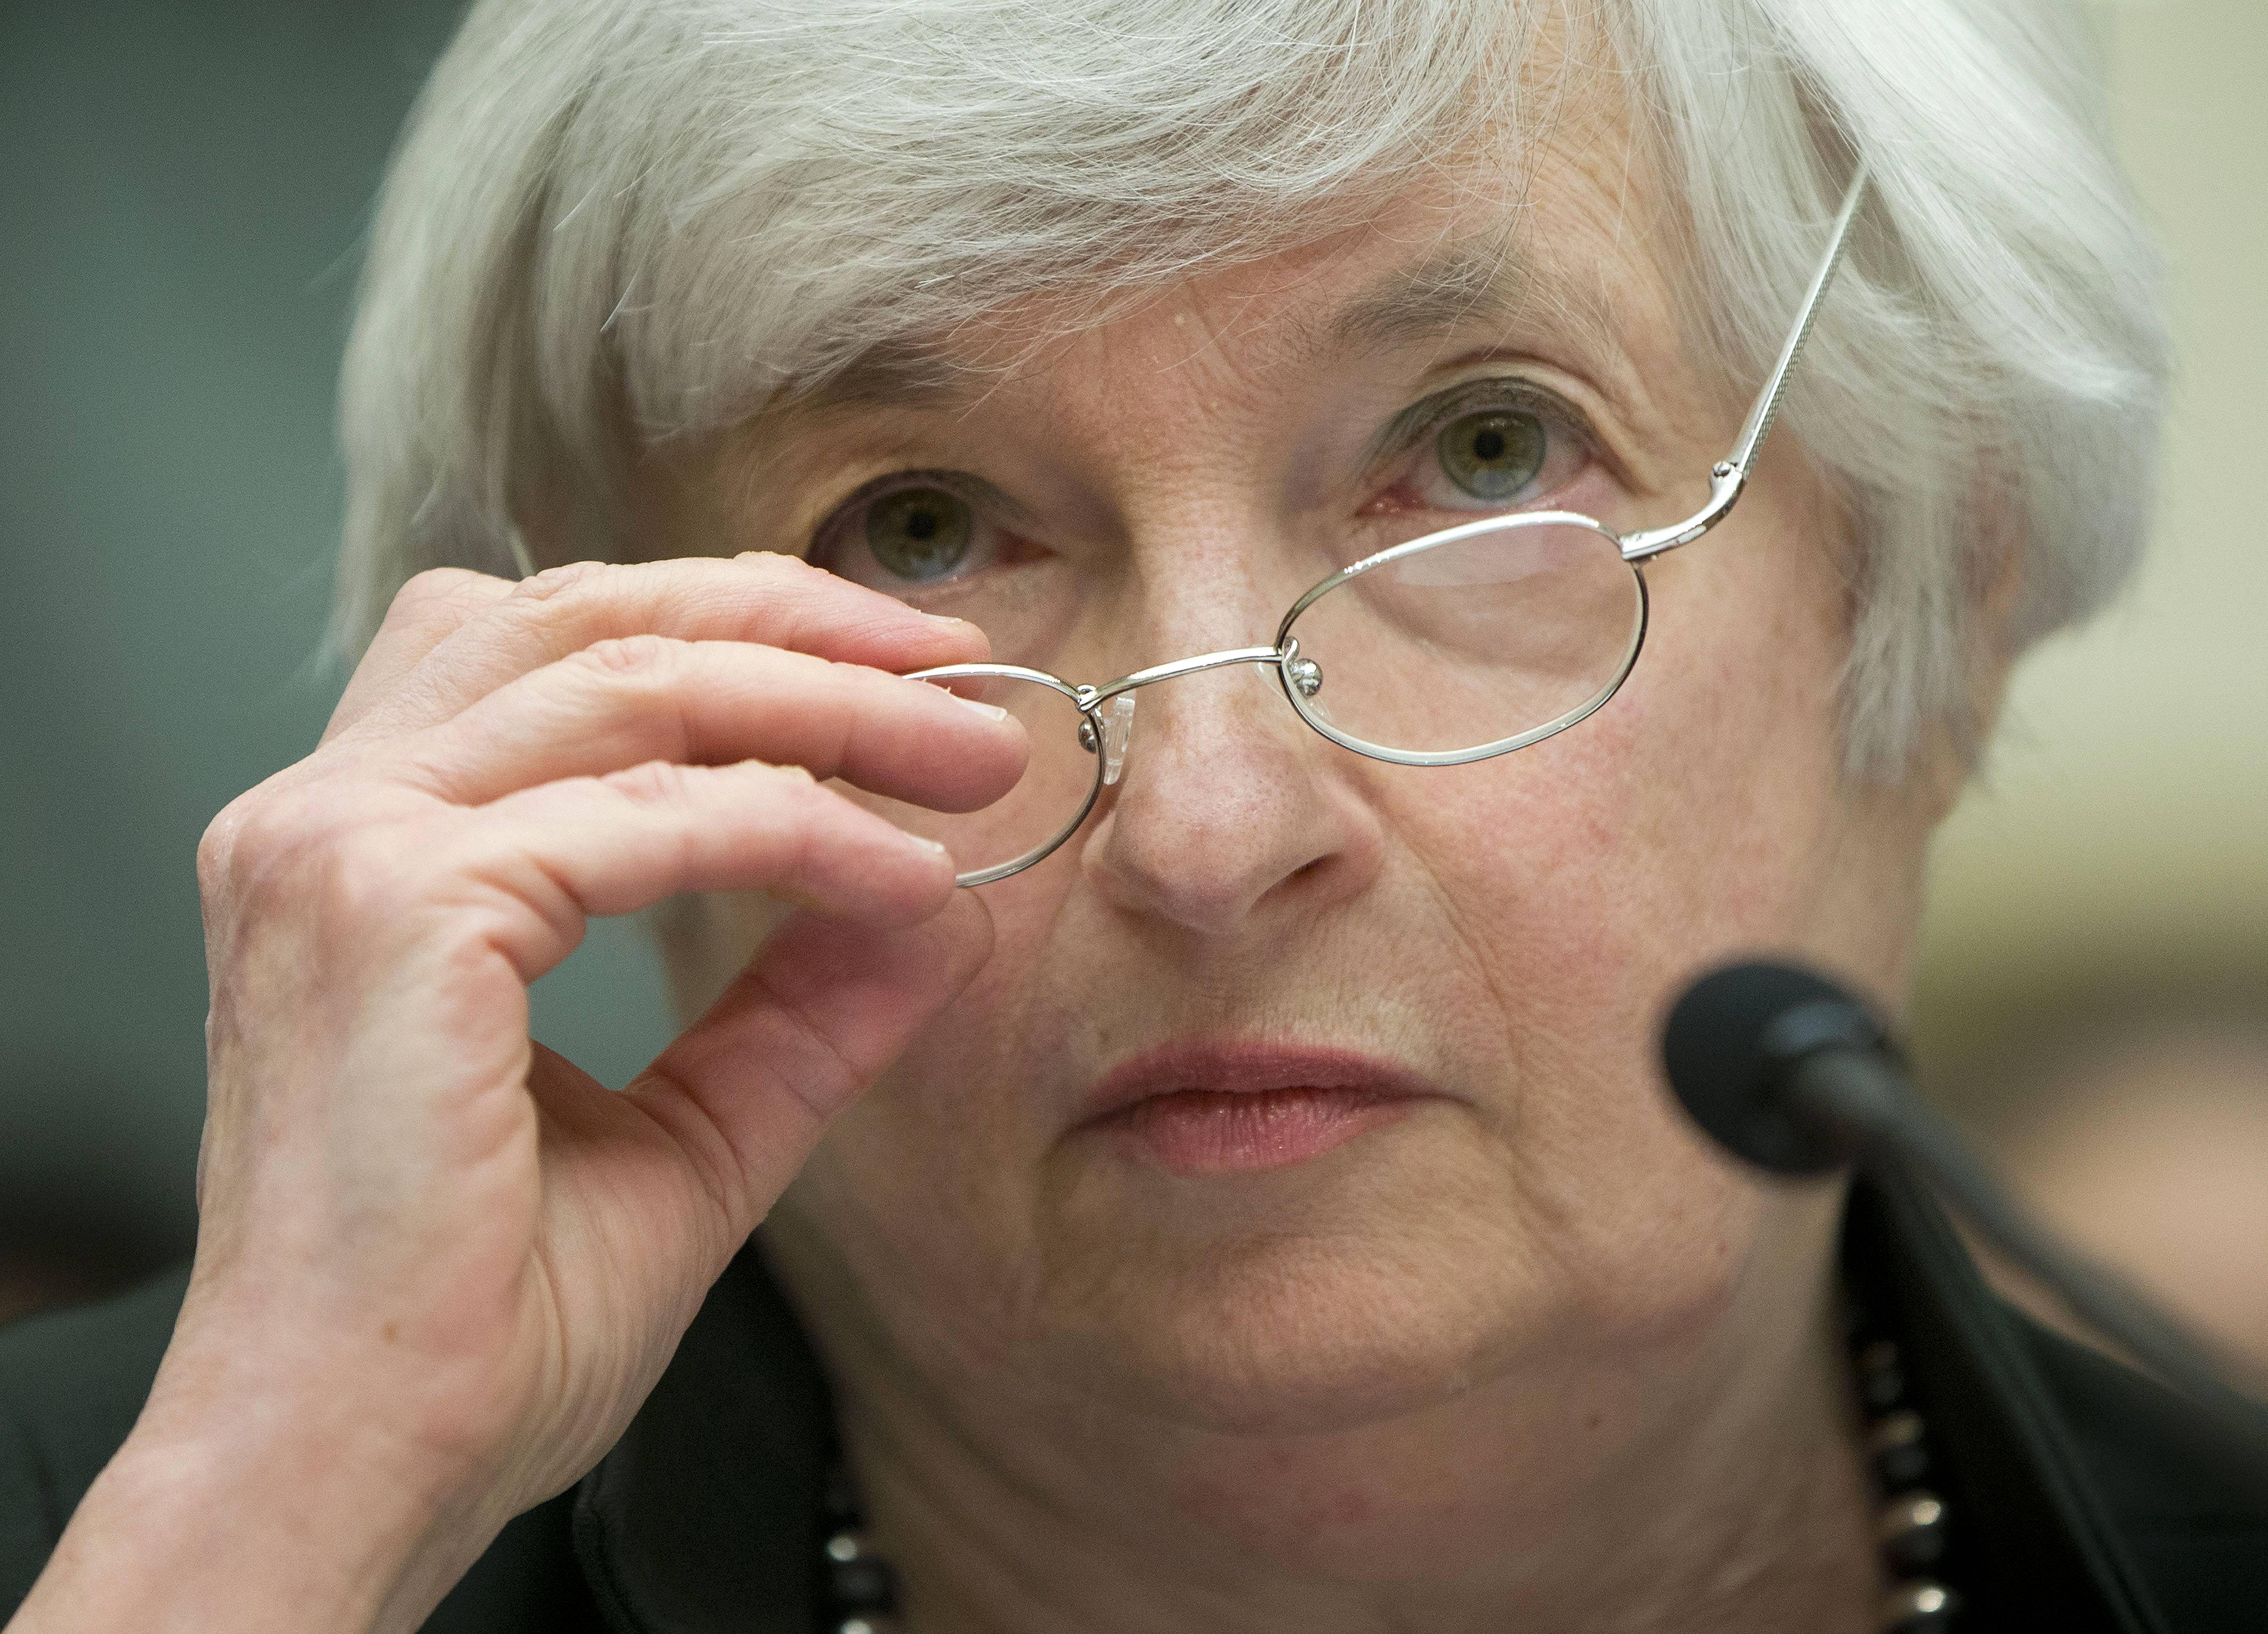 Yellen 'dashboard' signals: Job market not at full health